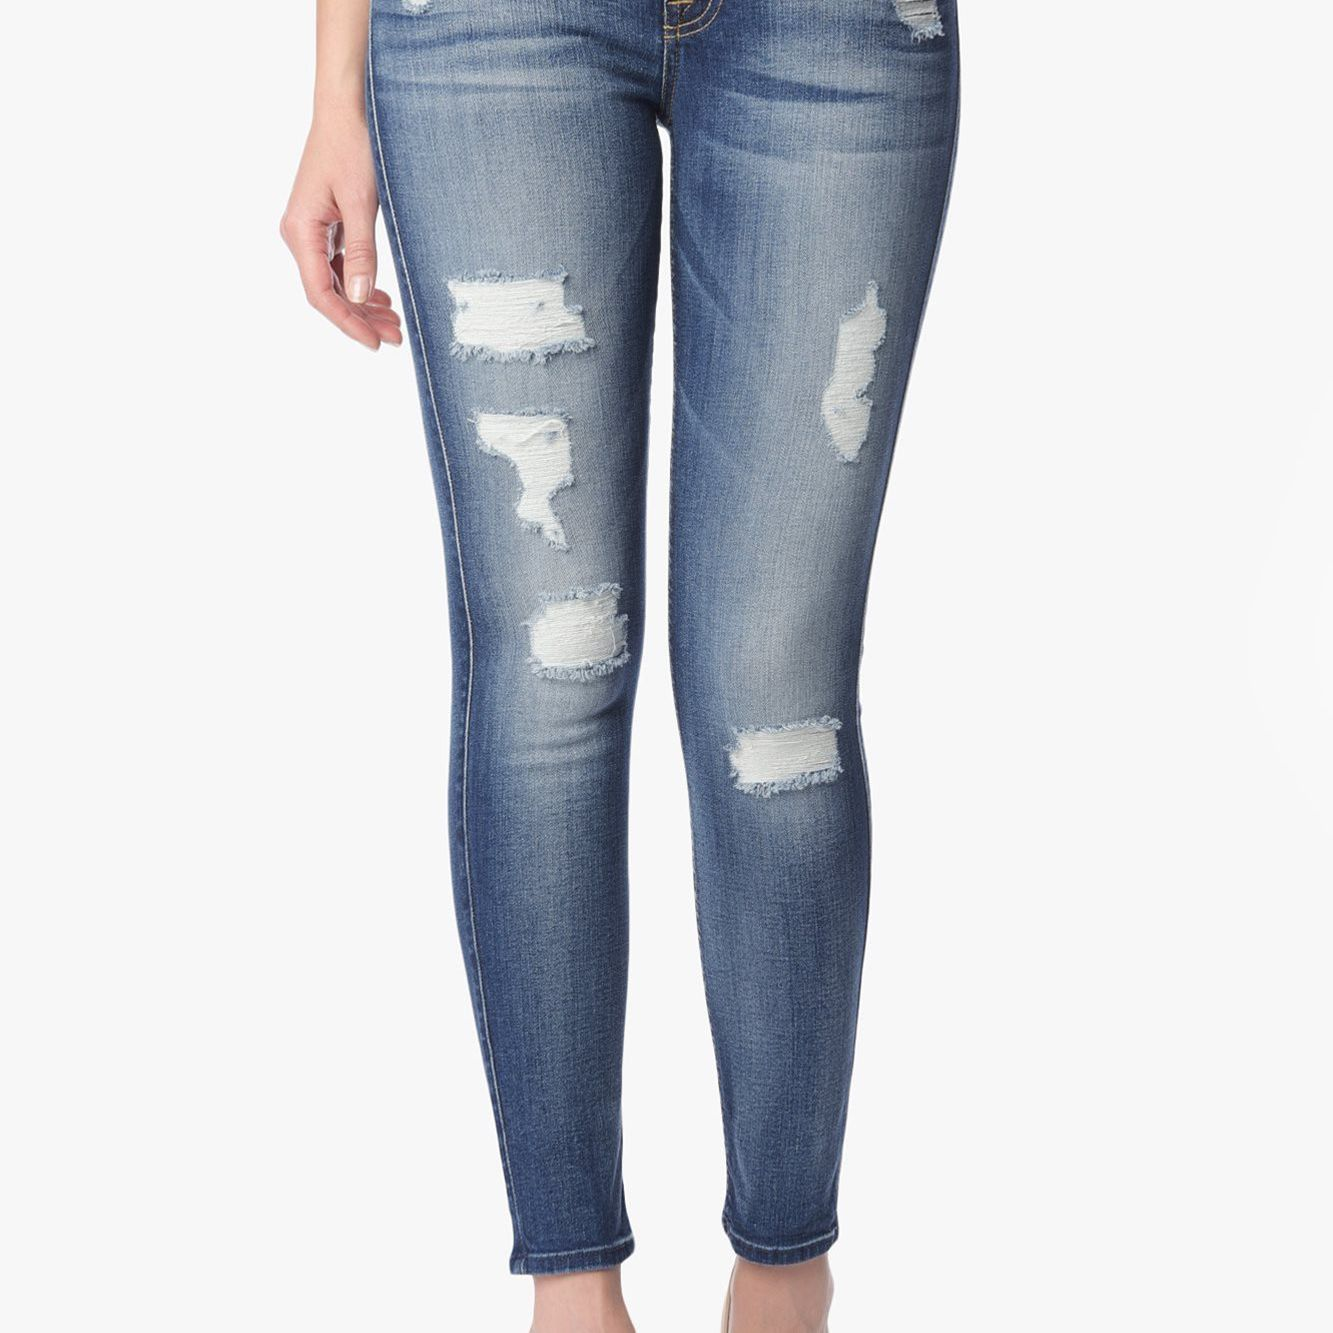 7 for All Mankind Distressed Ankle Skinny Jean